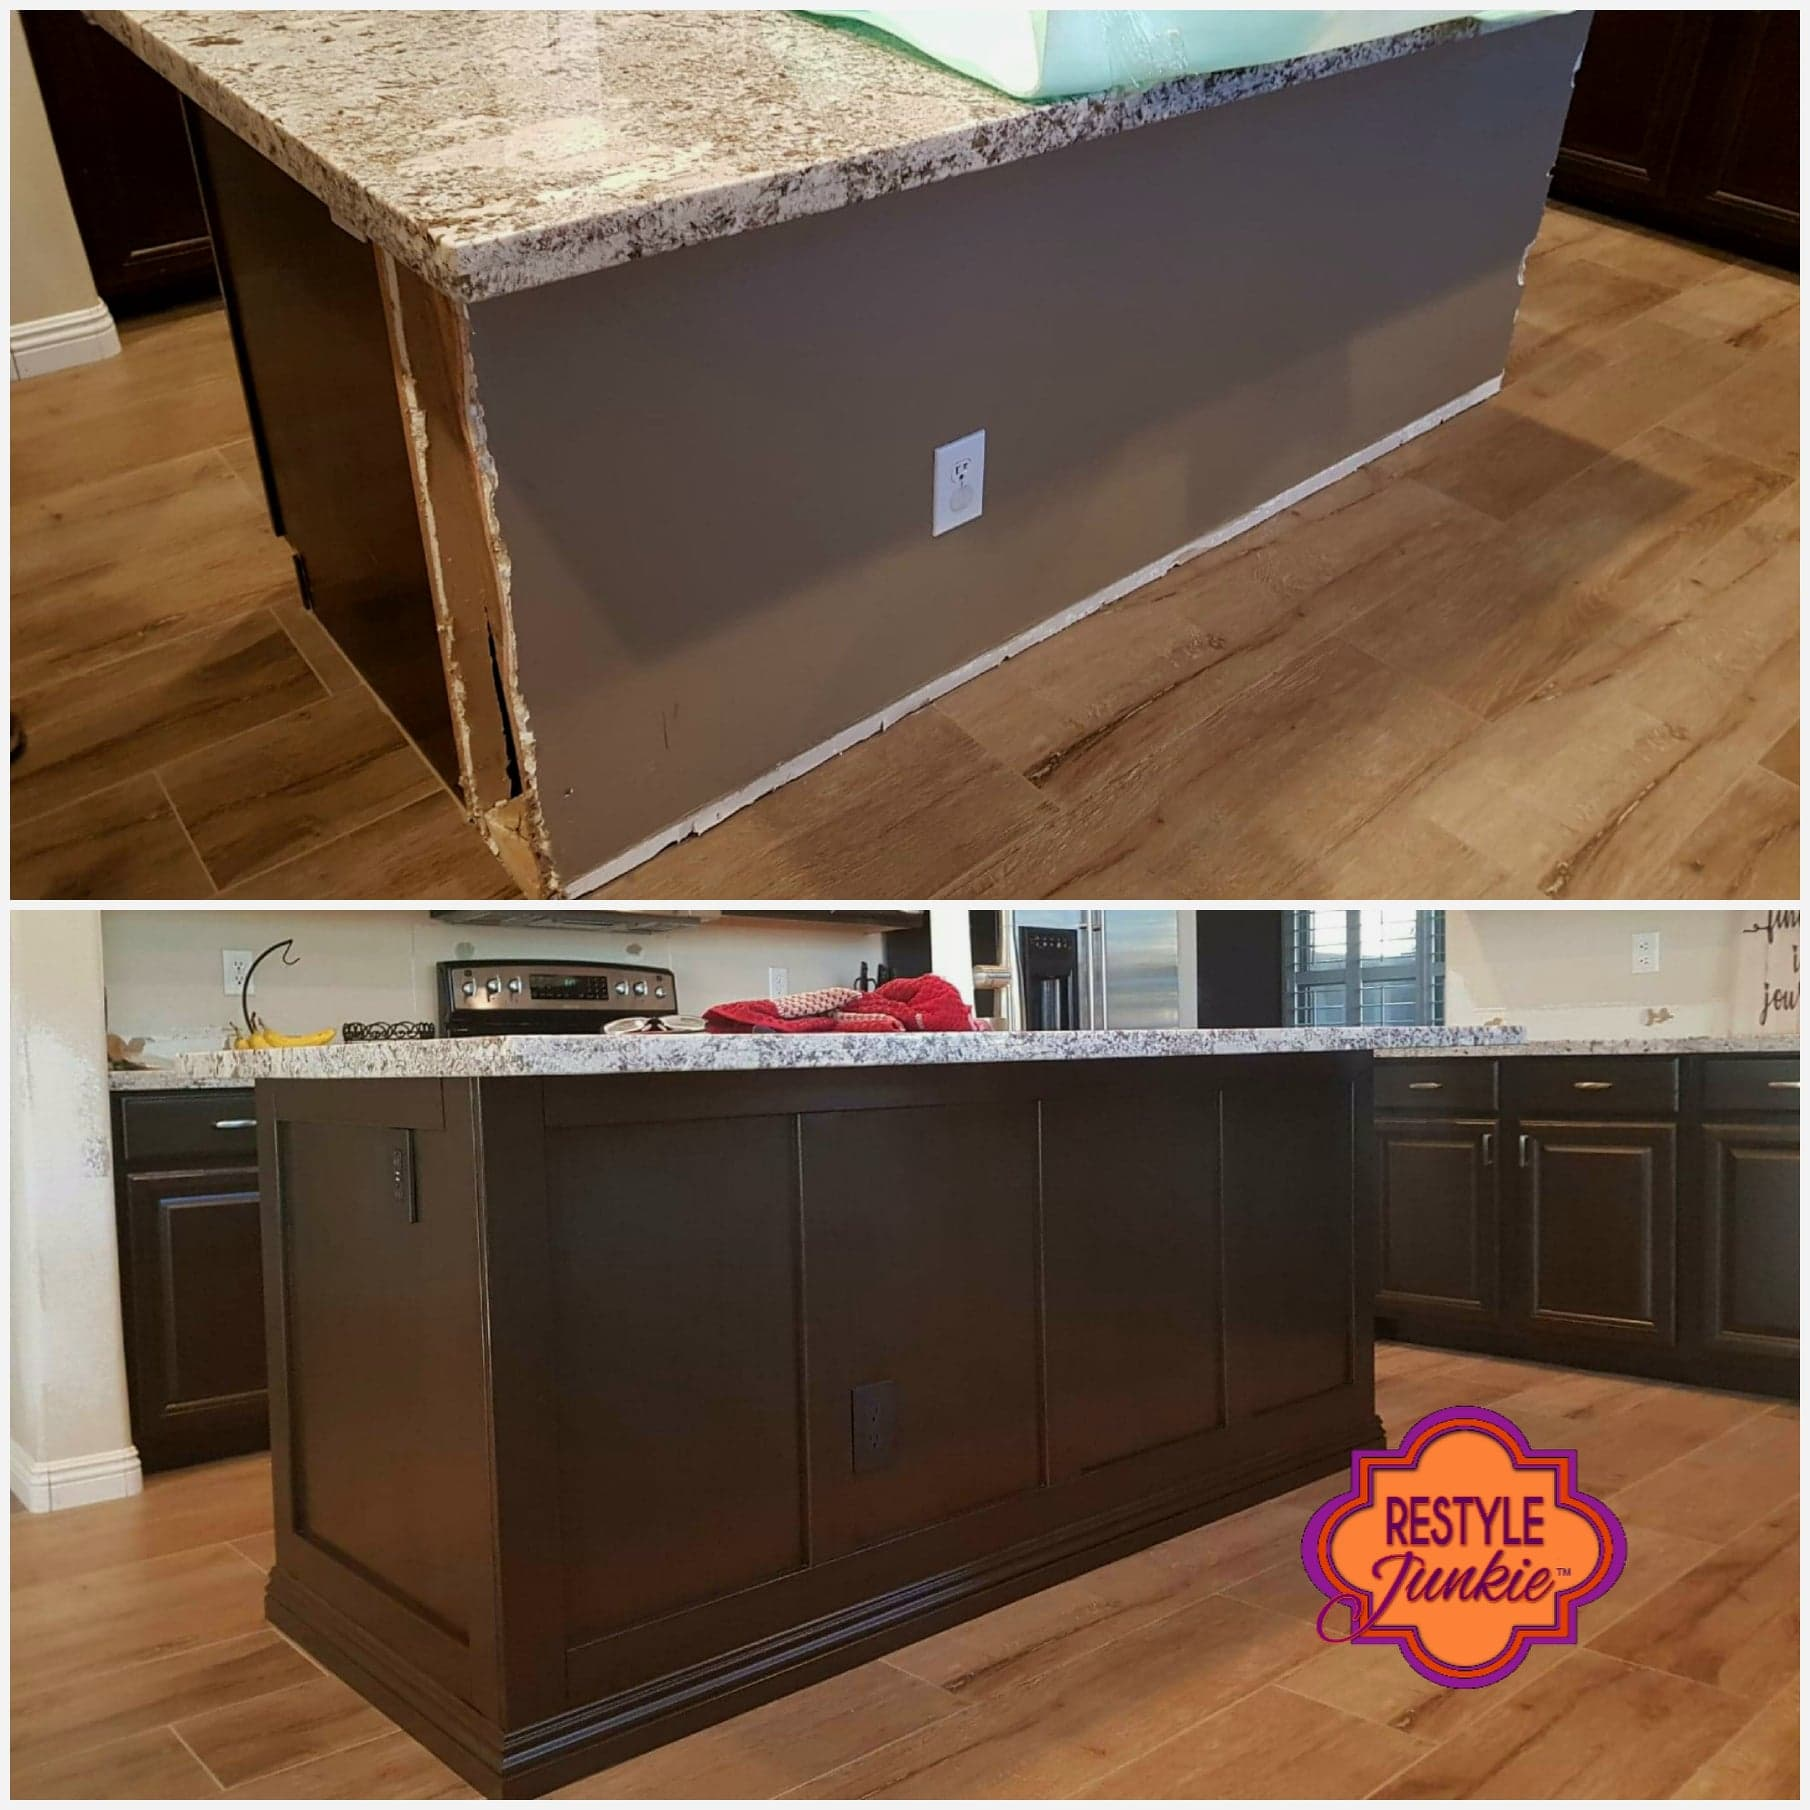 Trim work on a drywall area of a kitchen island